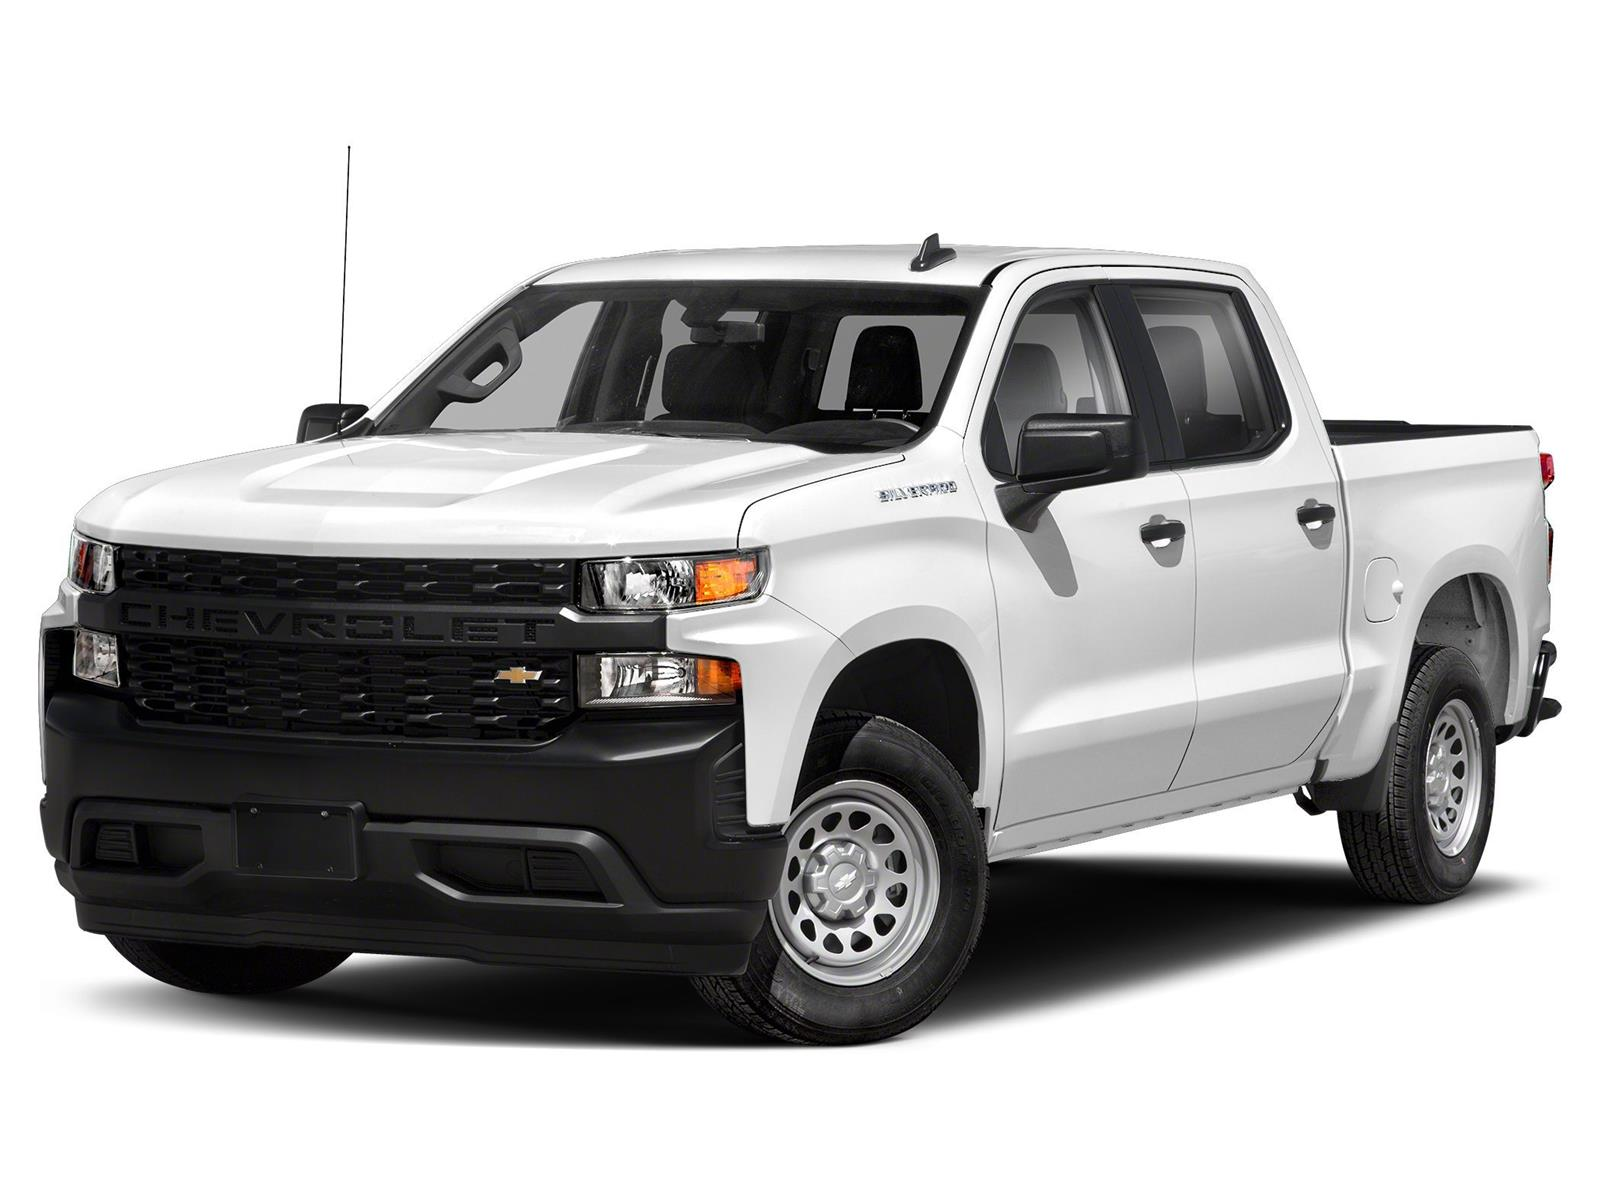 2021 Chevrolet Silverado 1500 Crew Cab 4x2, Pickup #MG116792 - photo 1